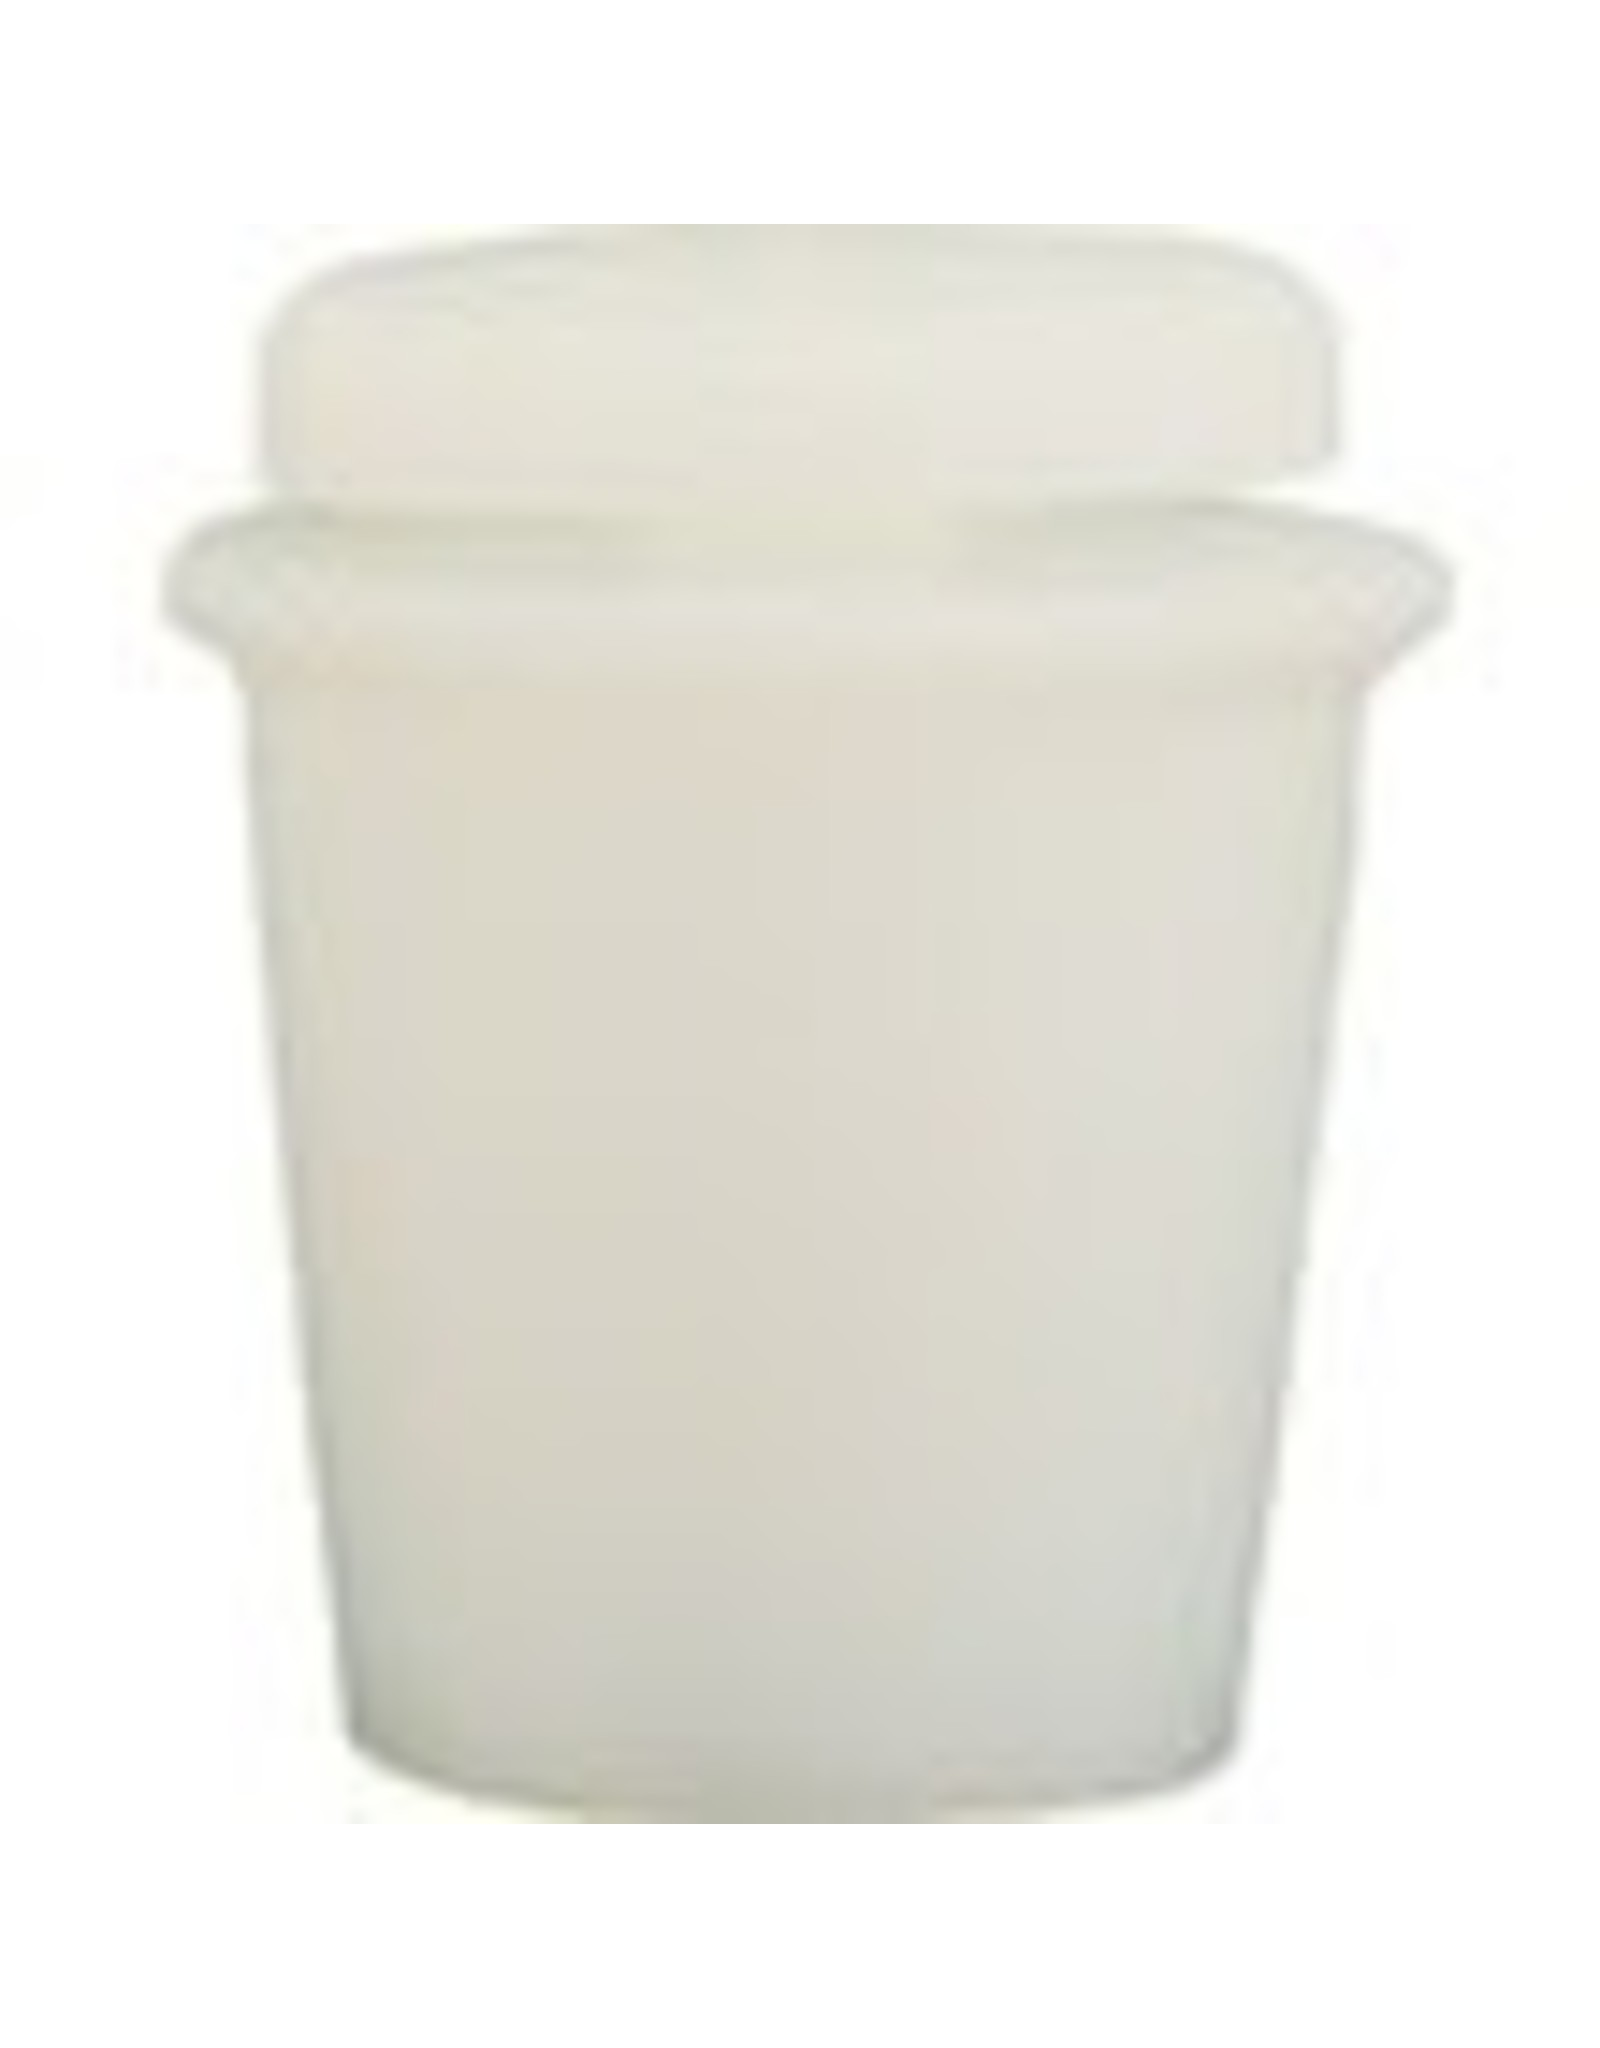 BREATHABLE SILICONE STOPPER